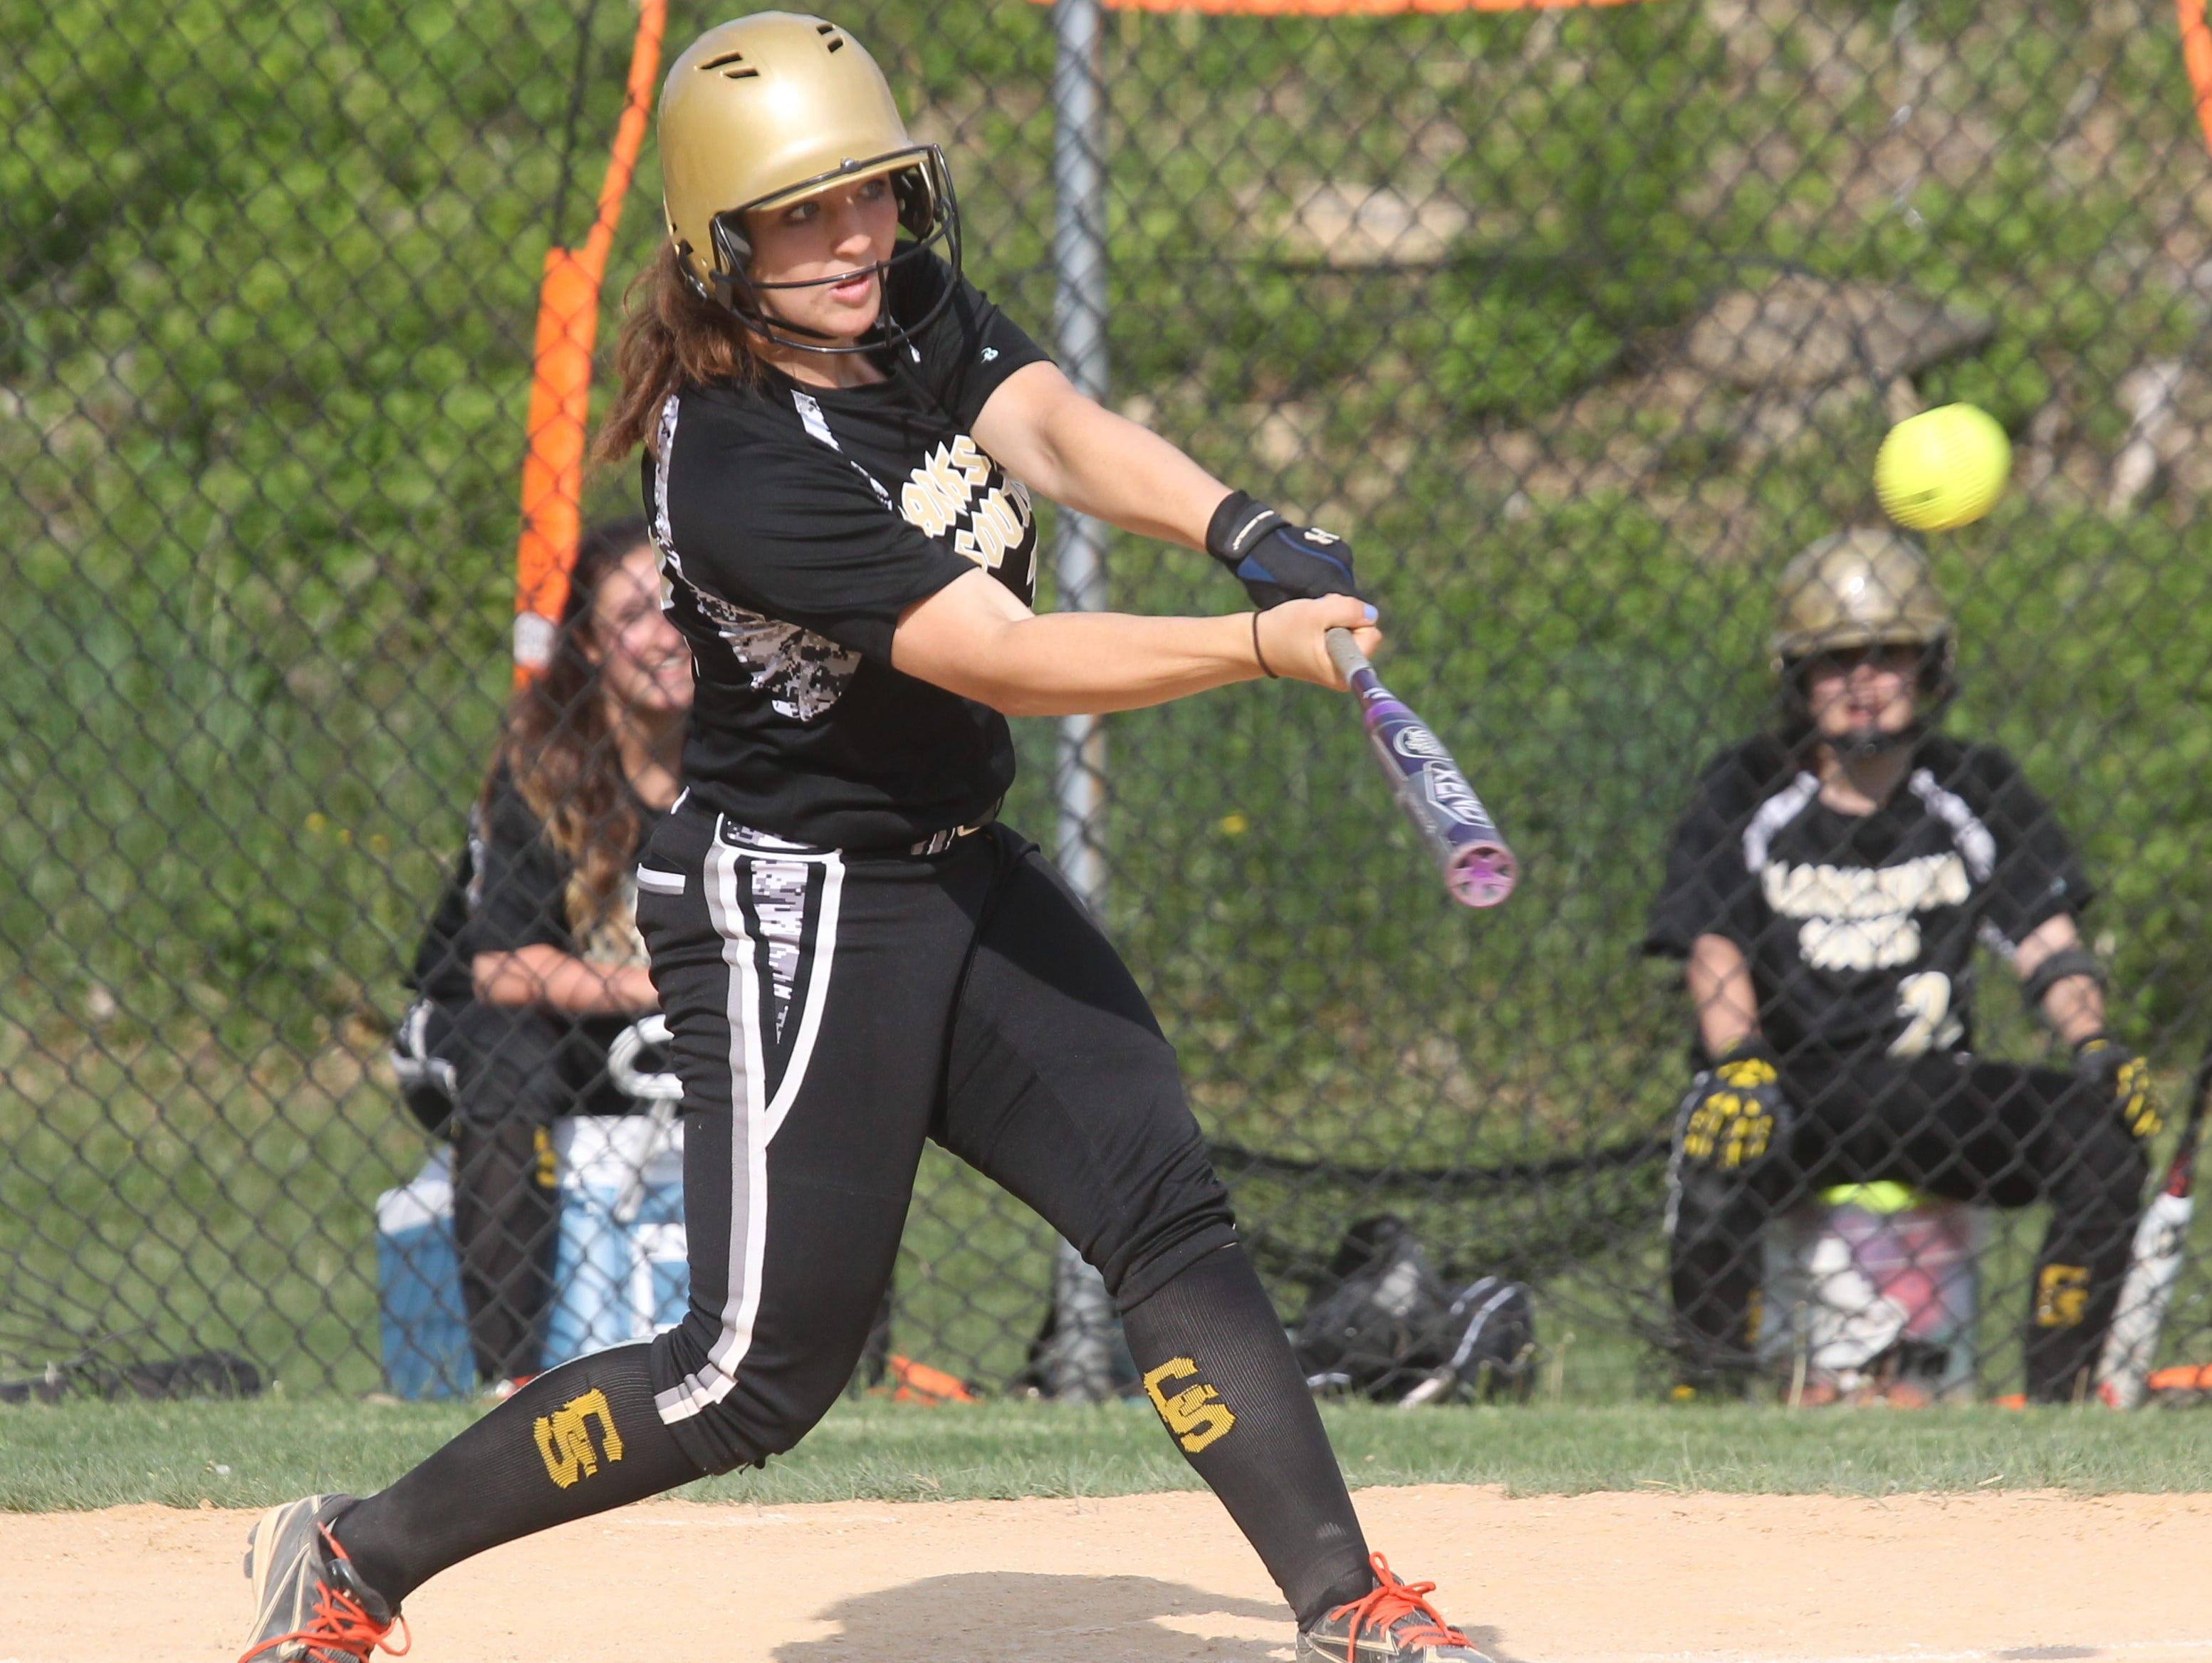 Clarkstown South's Sara Herskowitz hits a home run at Hendrick Hudson May 11, 2015. Clarkstown South won 11-4.